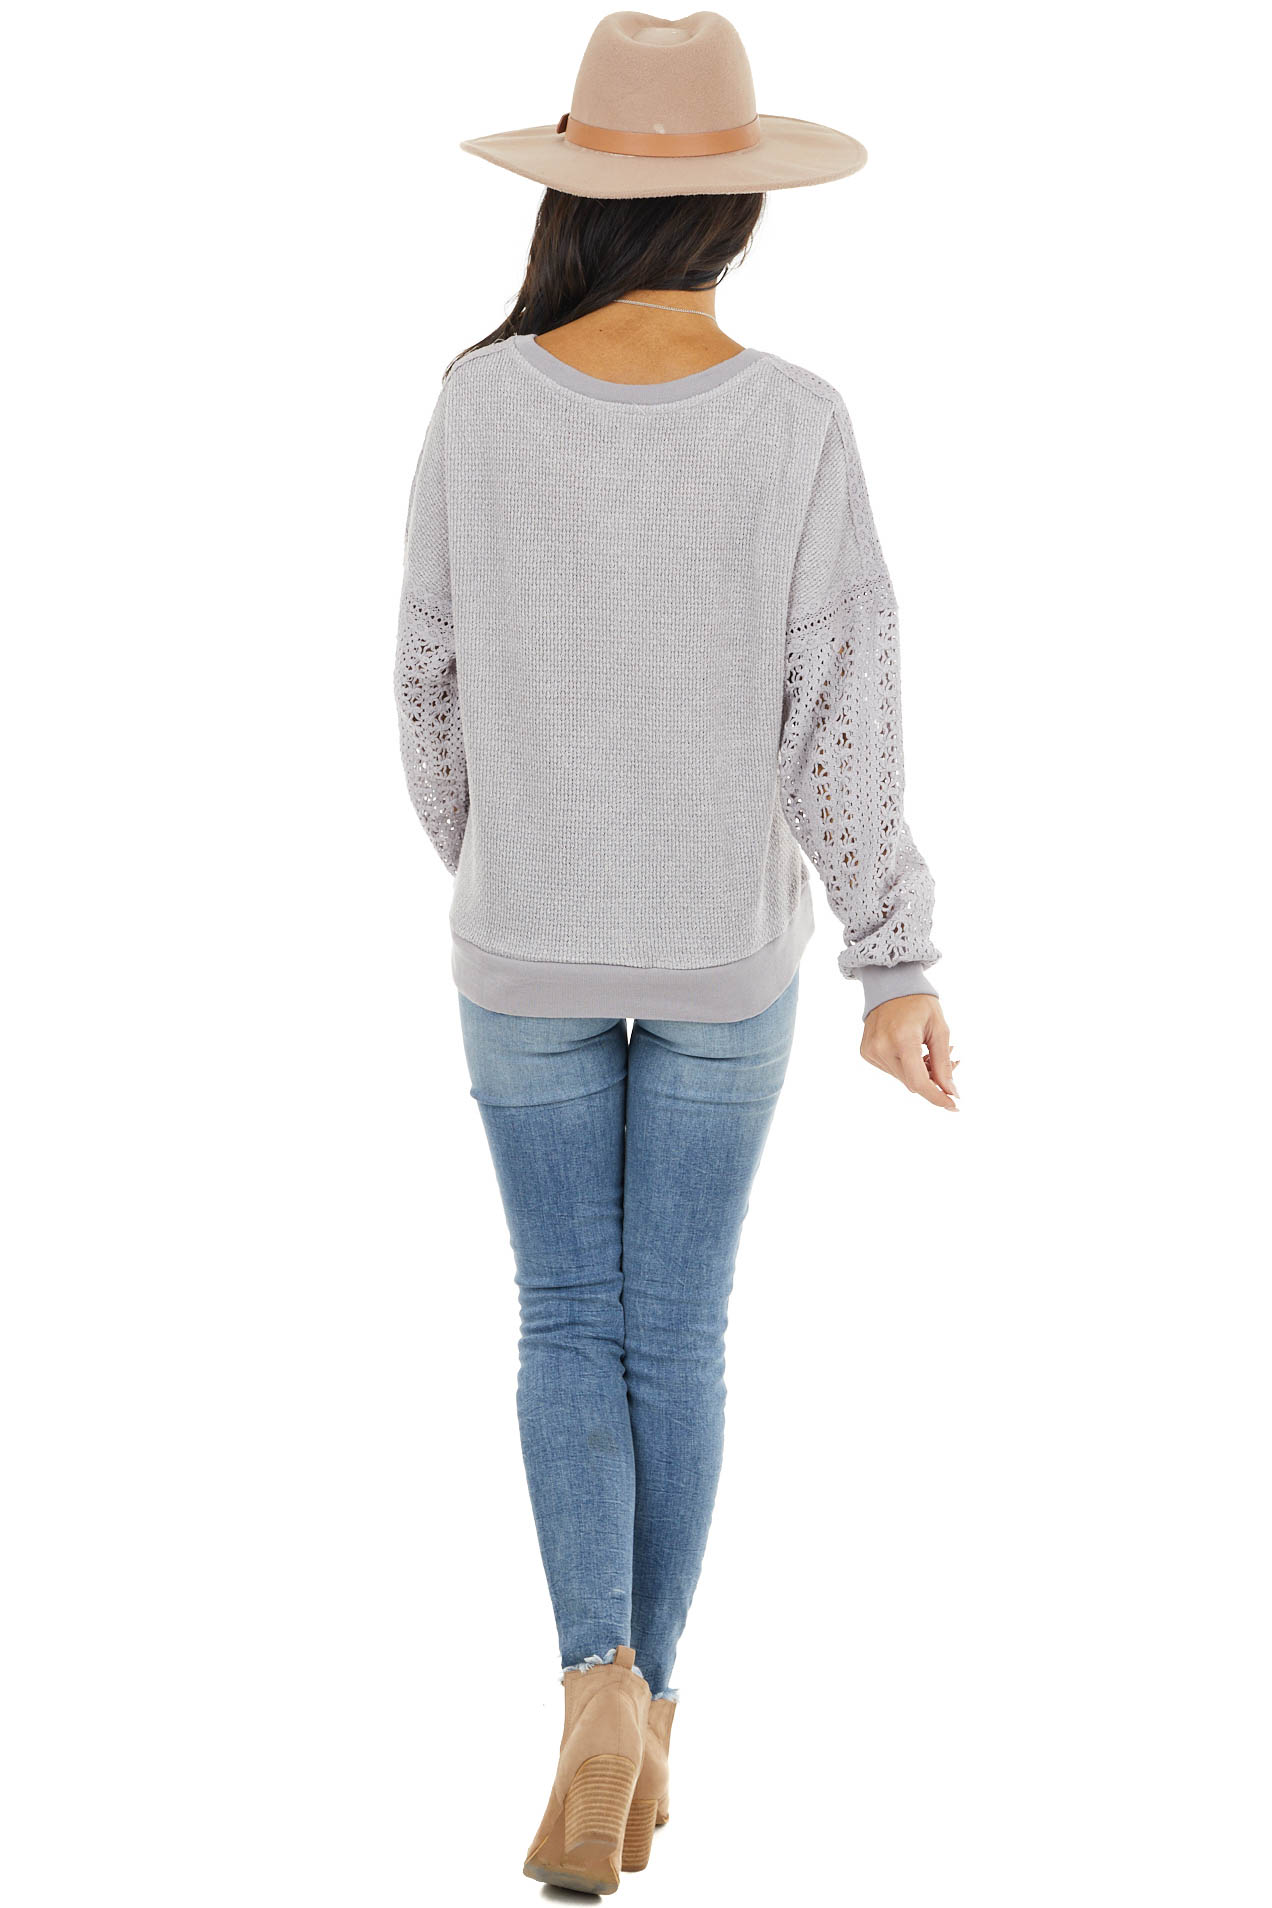 Slate Grey Knit Lightweight Sweater with Crocheted Sleeves